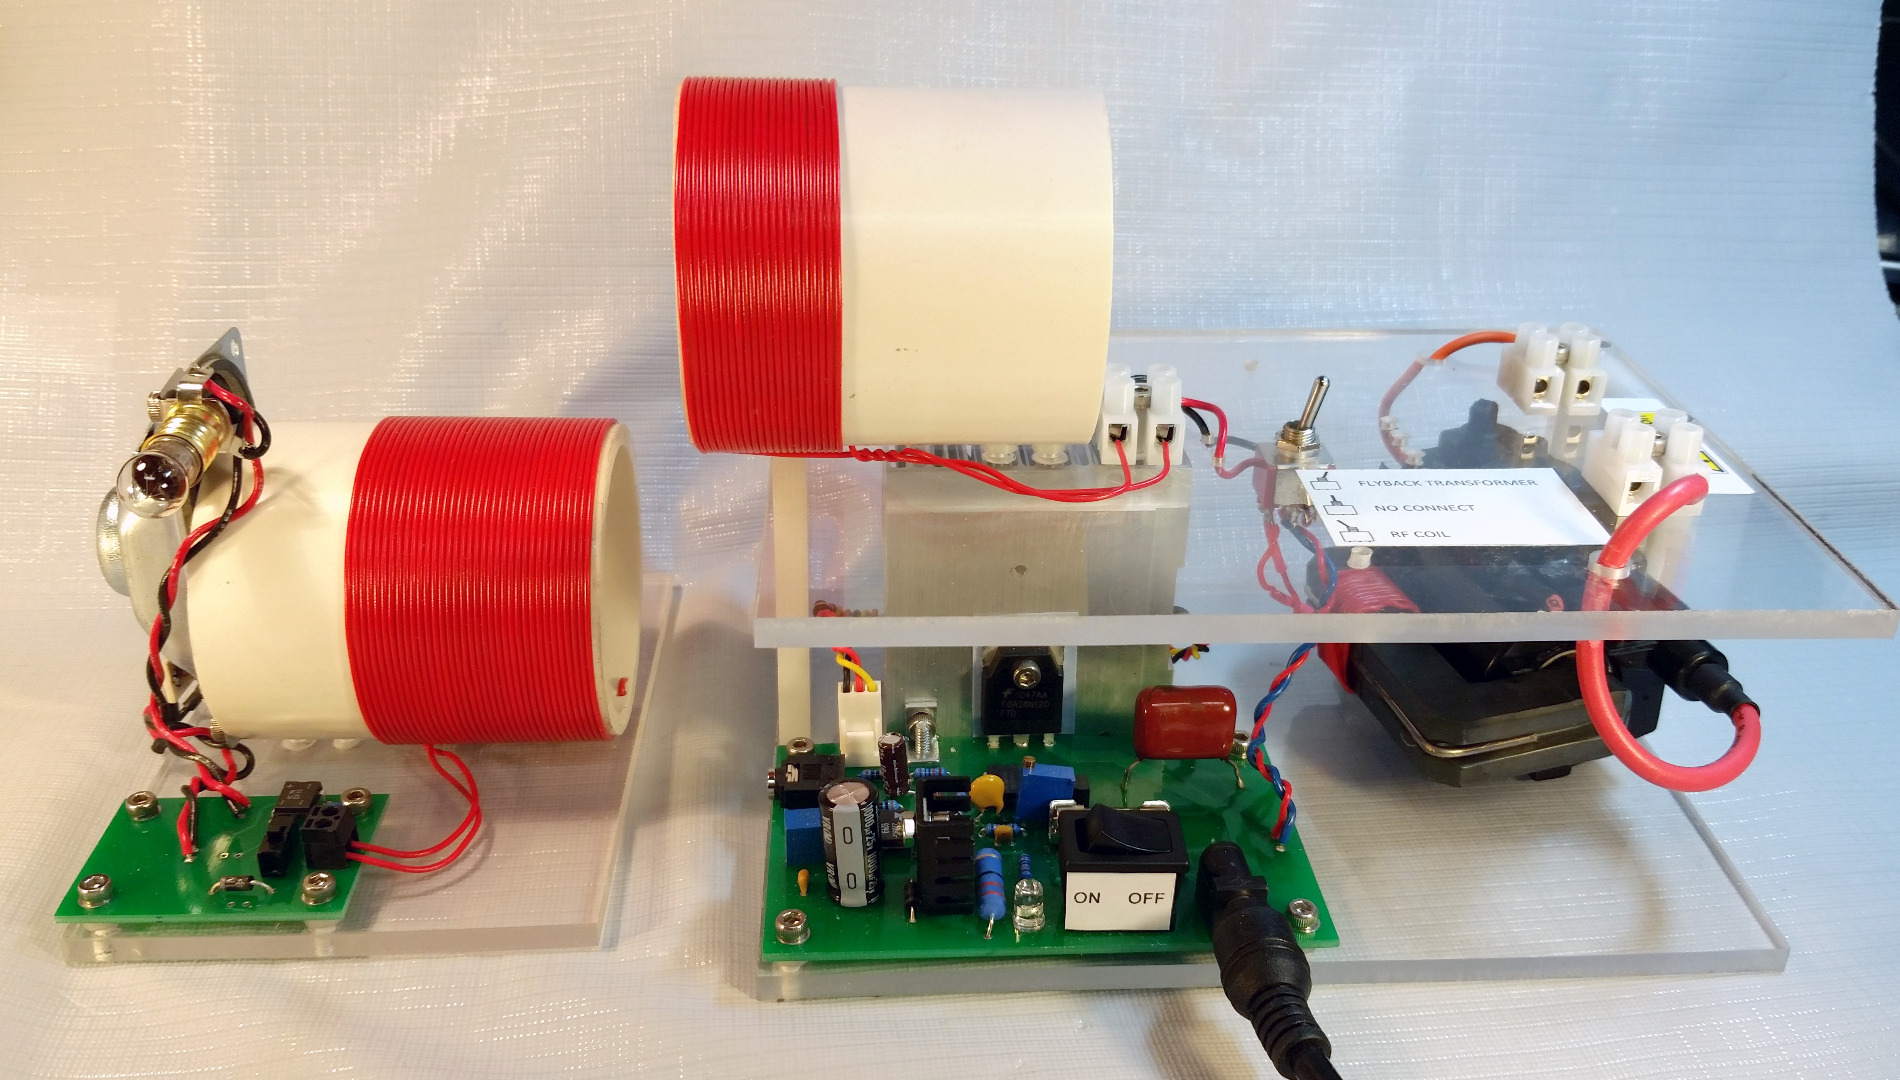 Class D Audio Modulated Kit for High Voltage Generation and RF Power Demonstration